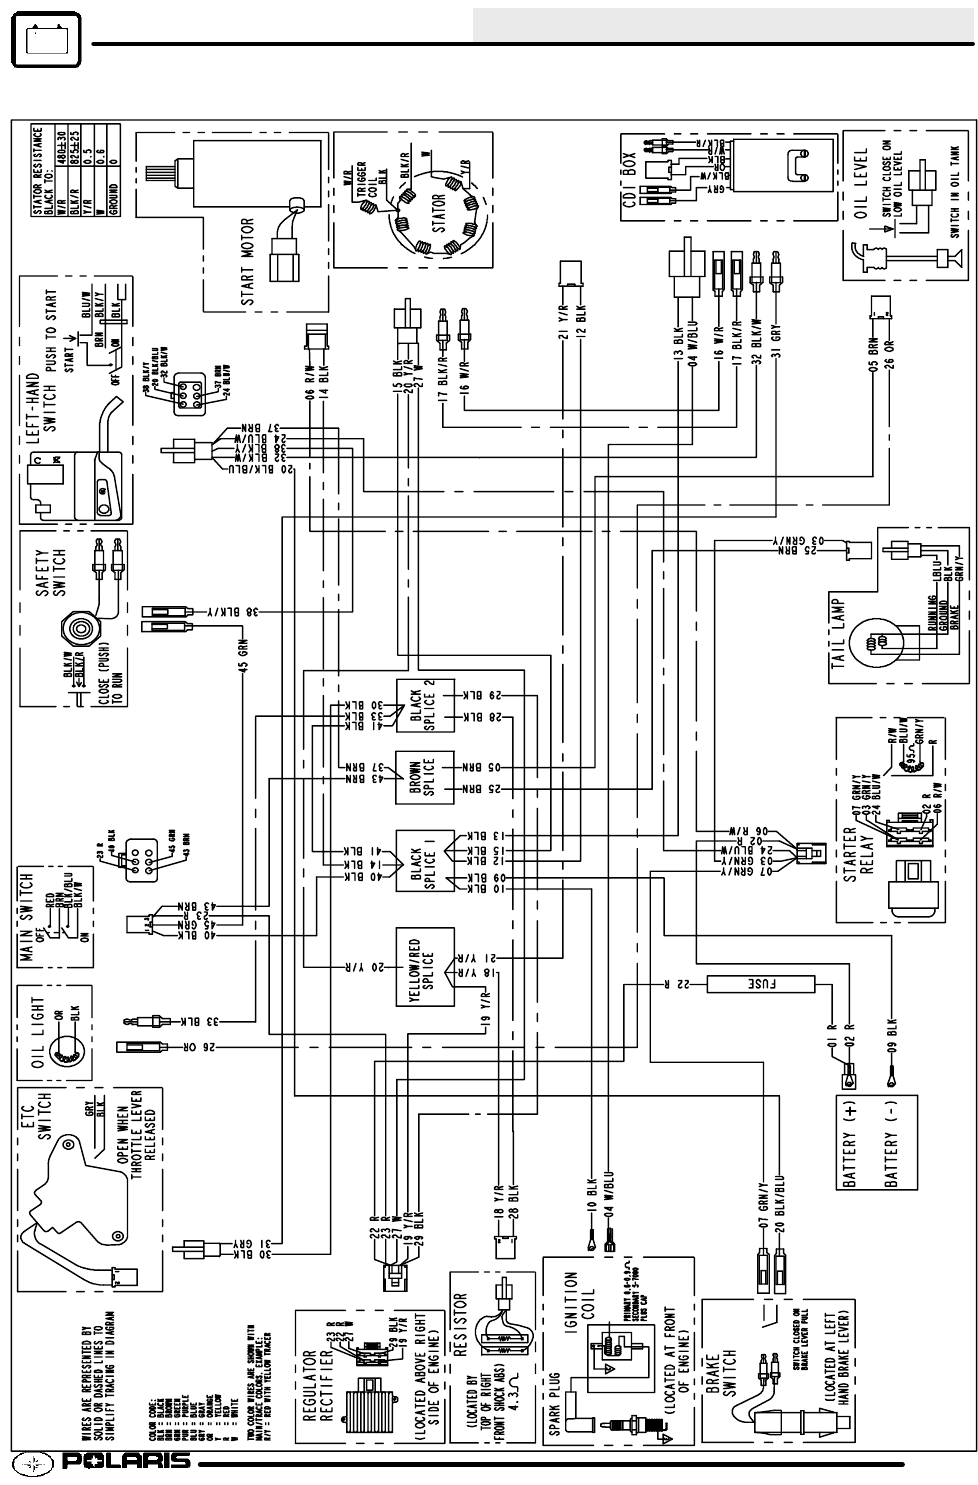 2003 polaris sportsman 500 wiring diagram 2001 polaris sportsman 90 wiring diagram - somurich.com 2009 sportsman 500 wiring diagram